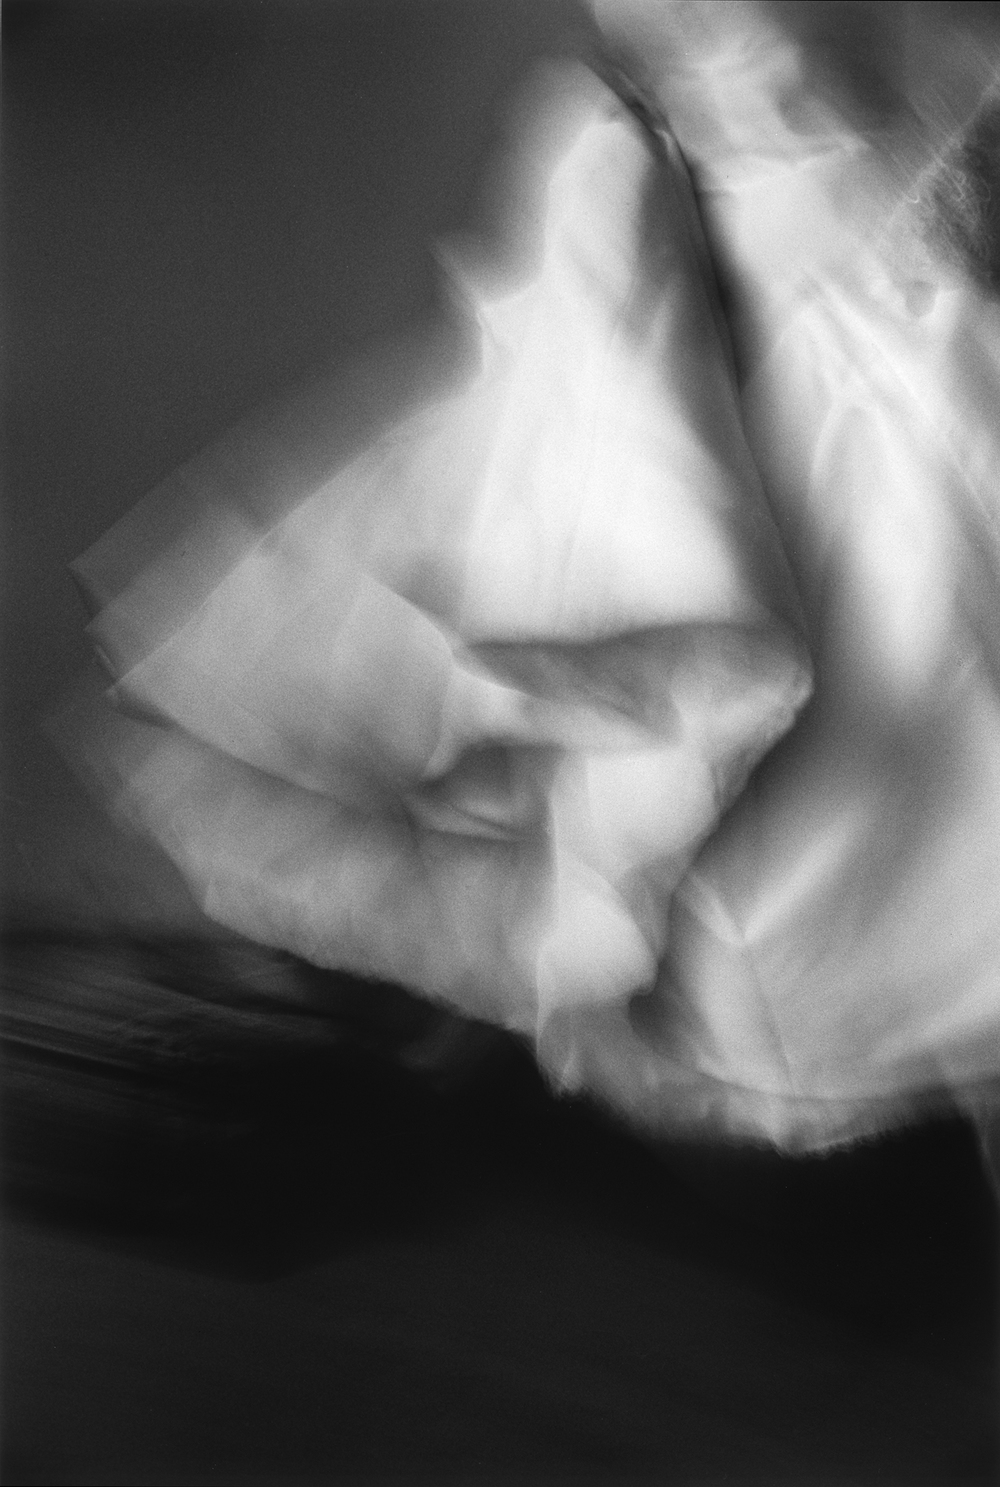 無題 #1039(婚紗系列)Untitled #1039 (Bridal Series),2001